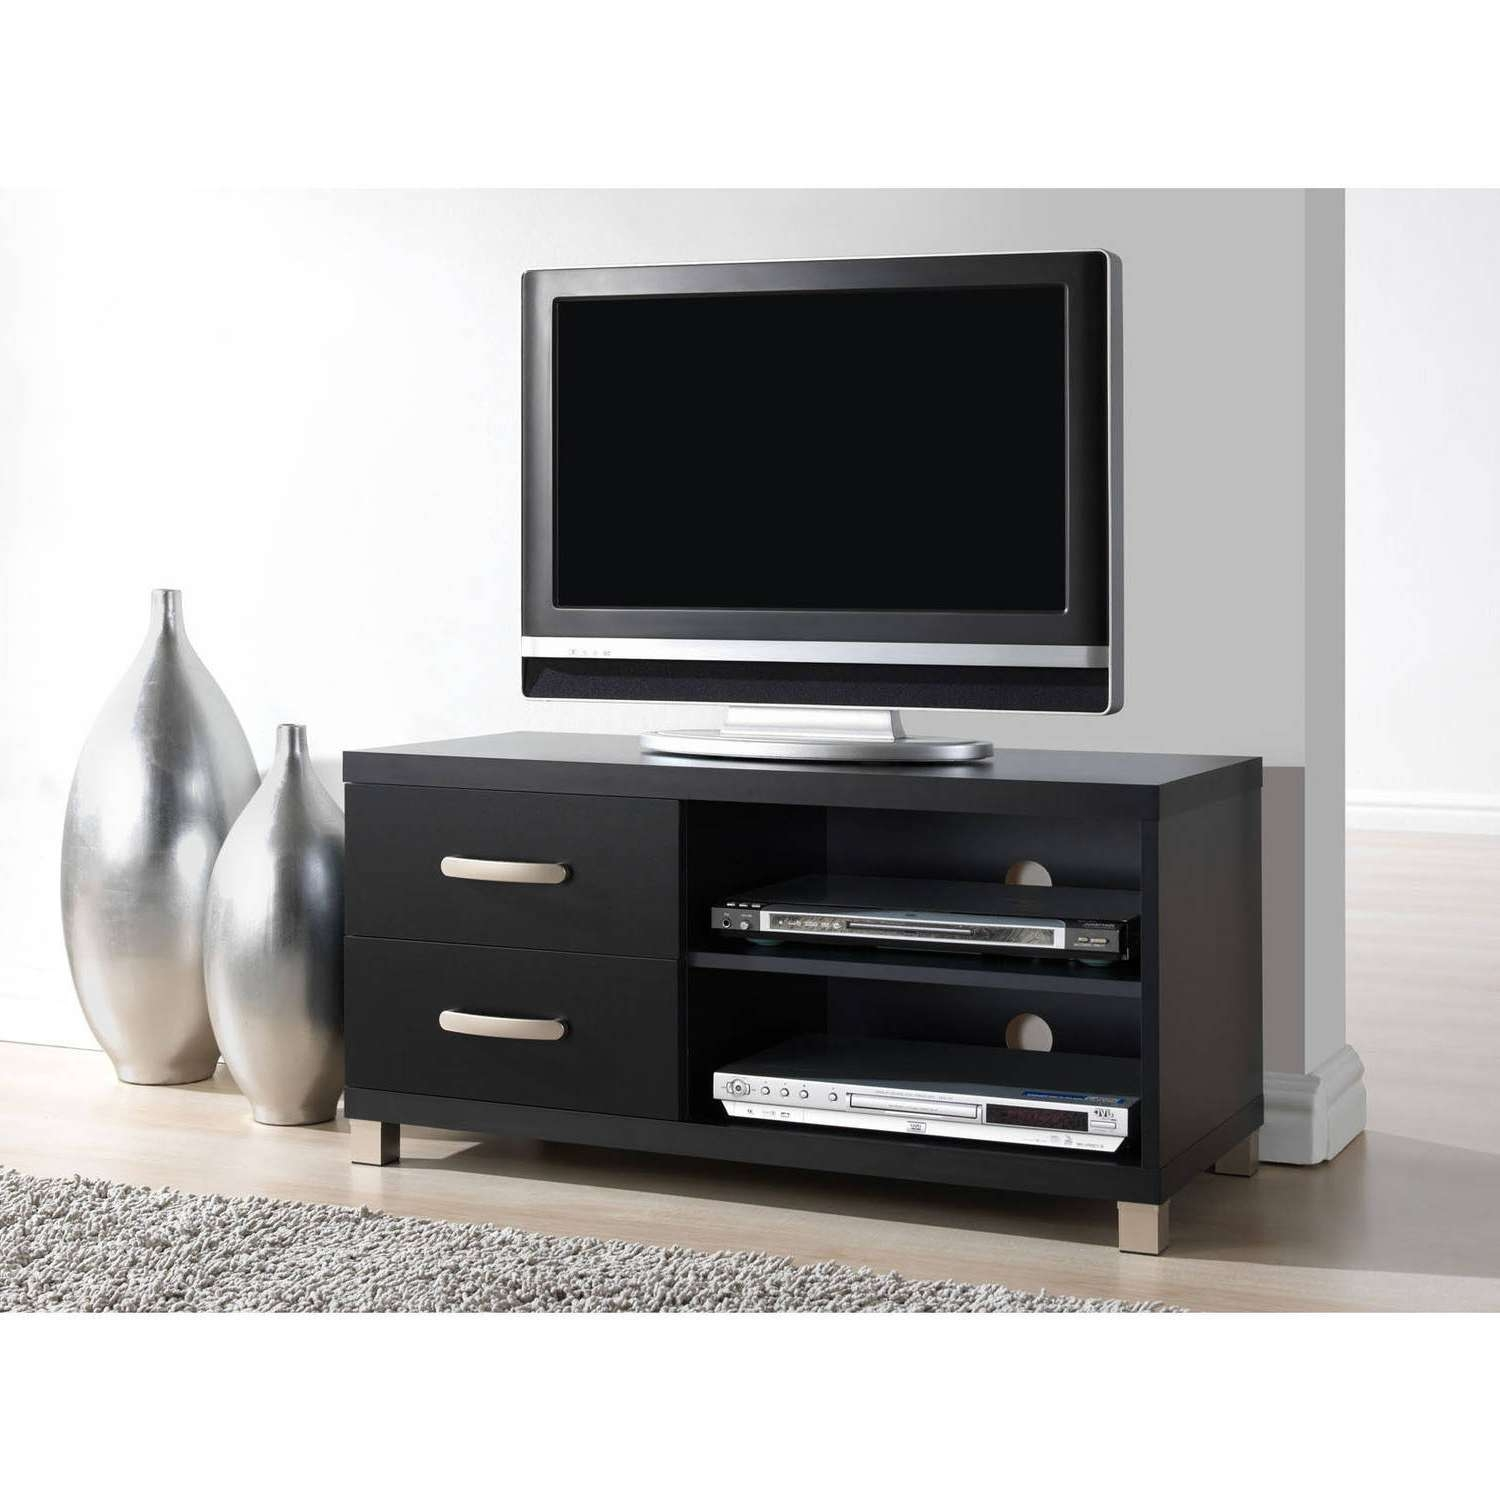 Techni Mobili 2 Drawer Tv Cabinet, Black – Walmart With Regard To Black Tv Cabinets With Drawers (View 17 of 20)